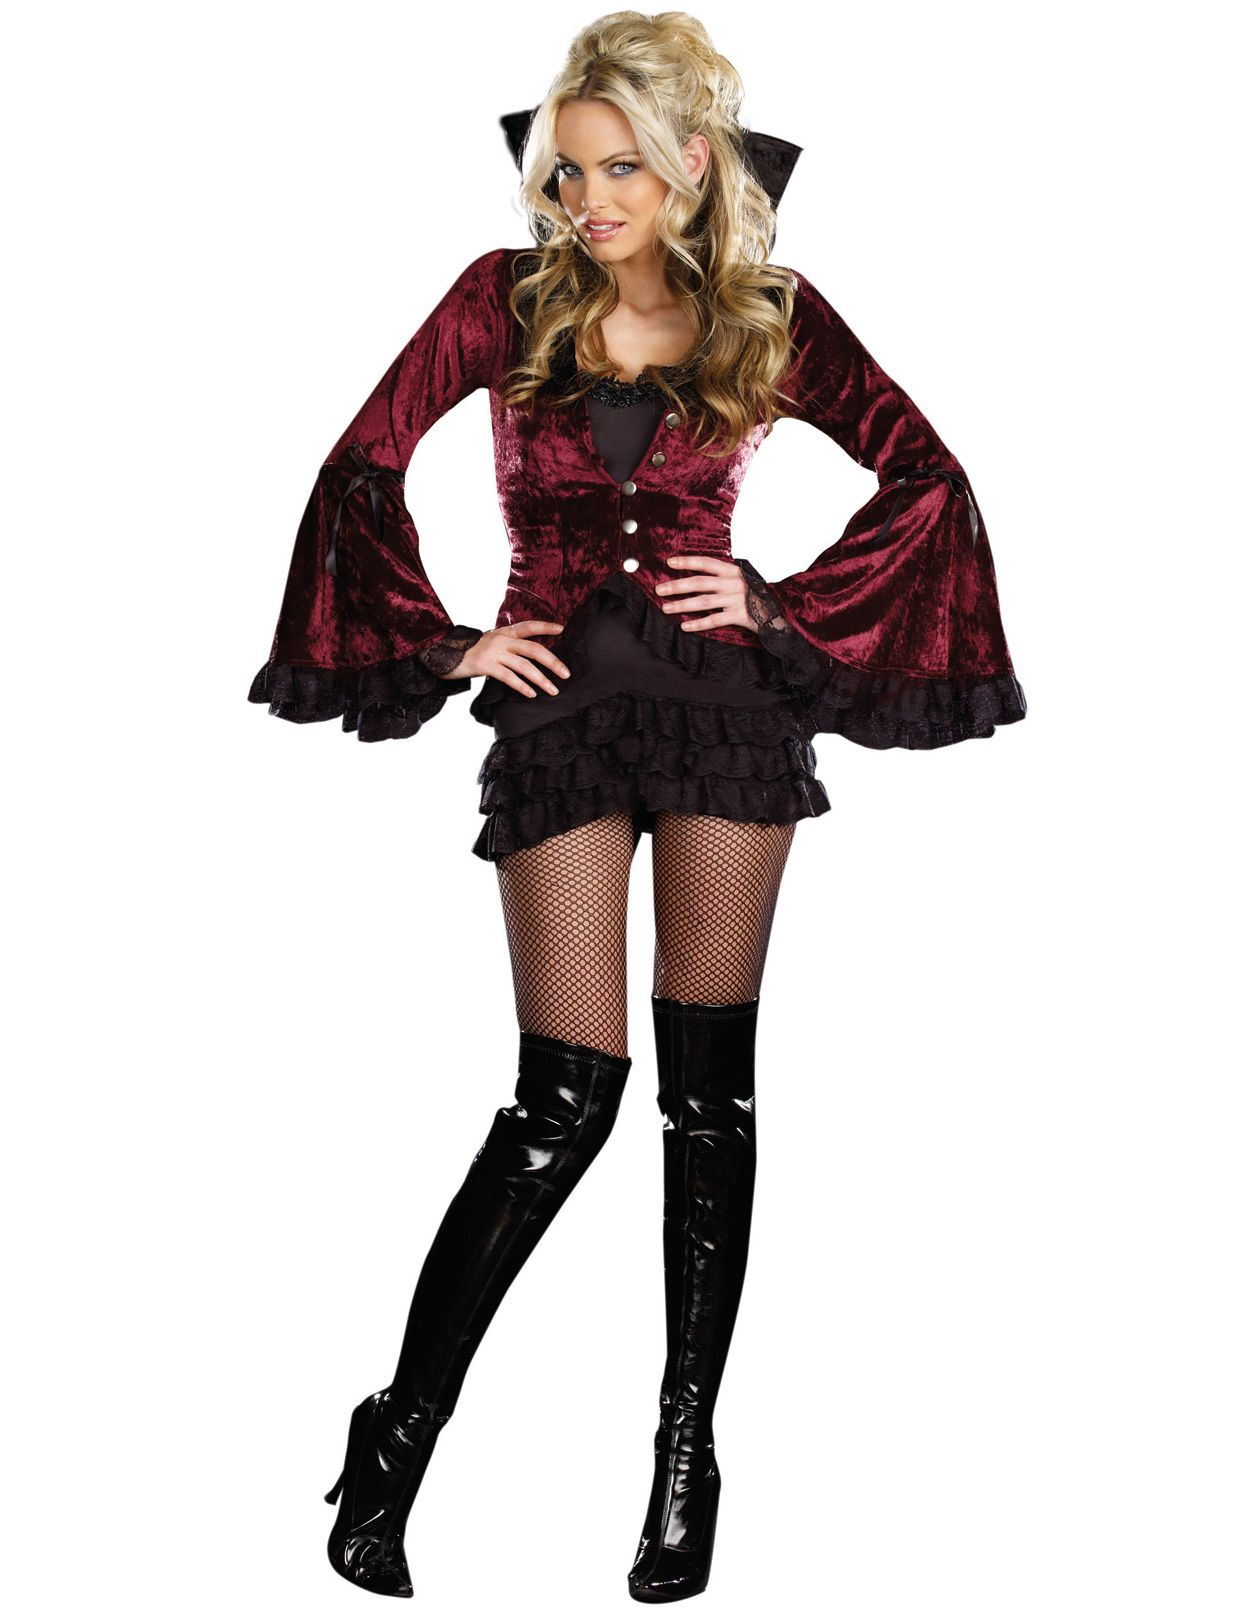 Witch costume M-818,halloween costume ideas for women,snooki ...